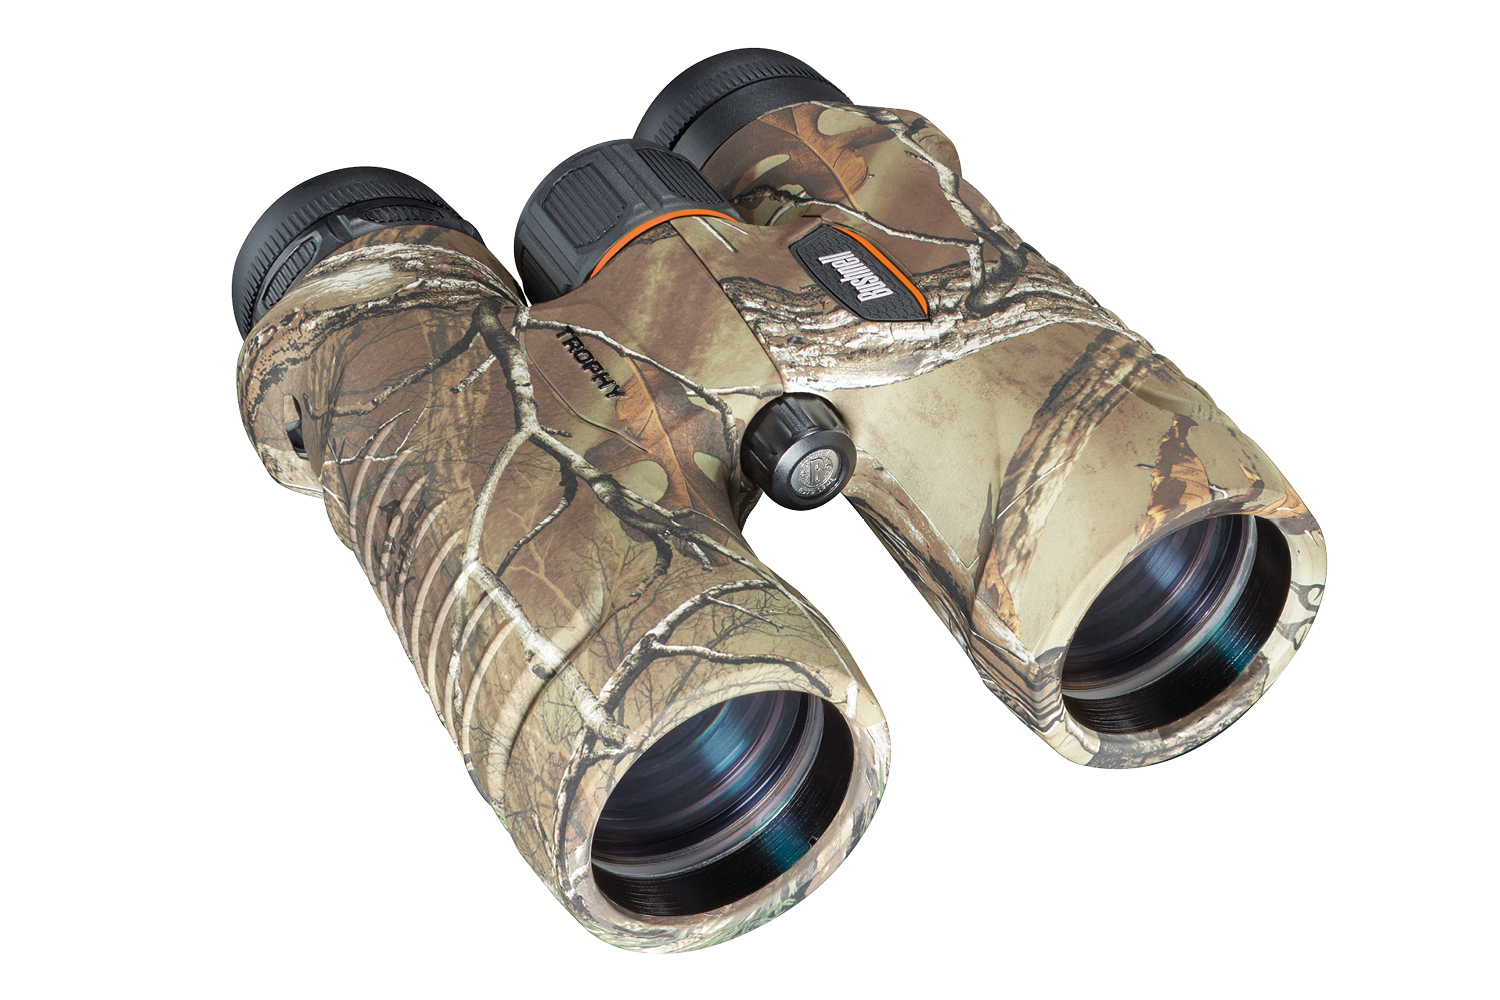 Бинокль Bushnell TROPHY 10x42 camo бинокль carl zeiss 10x42 hd conquest